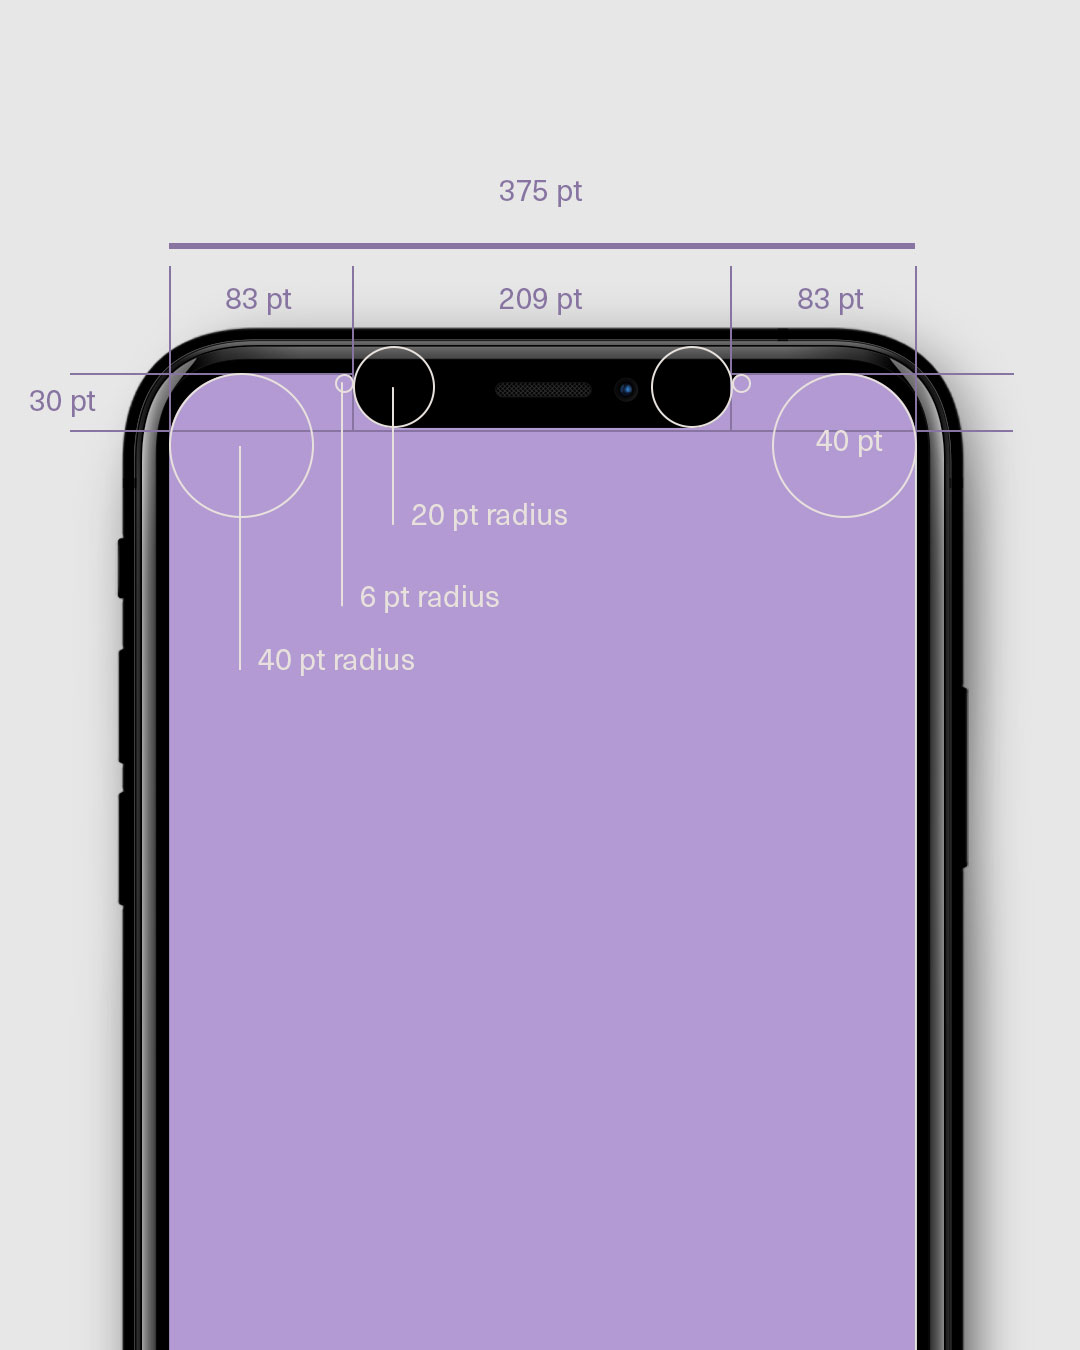 ohHello Design Project | iPhone X notch